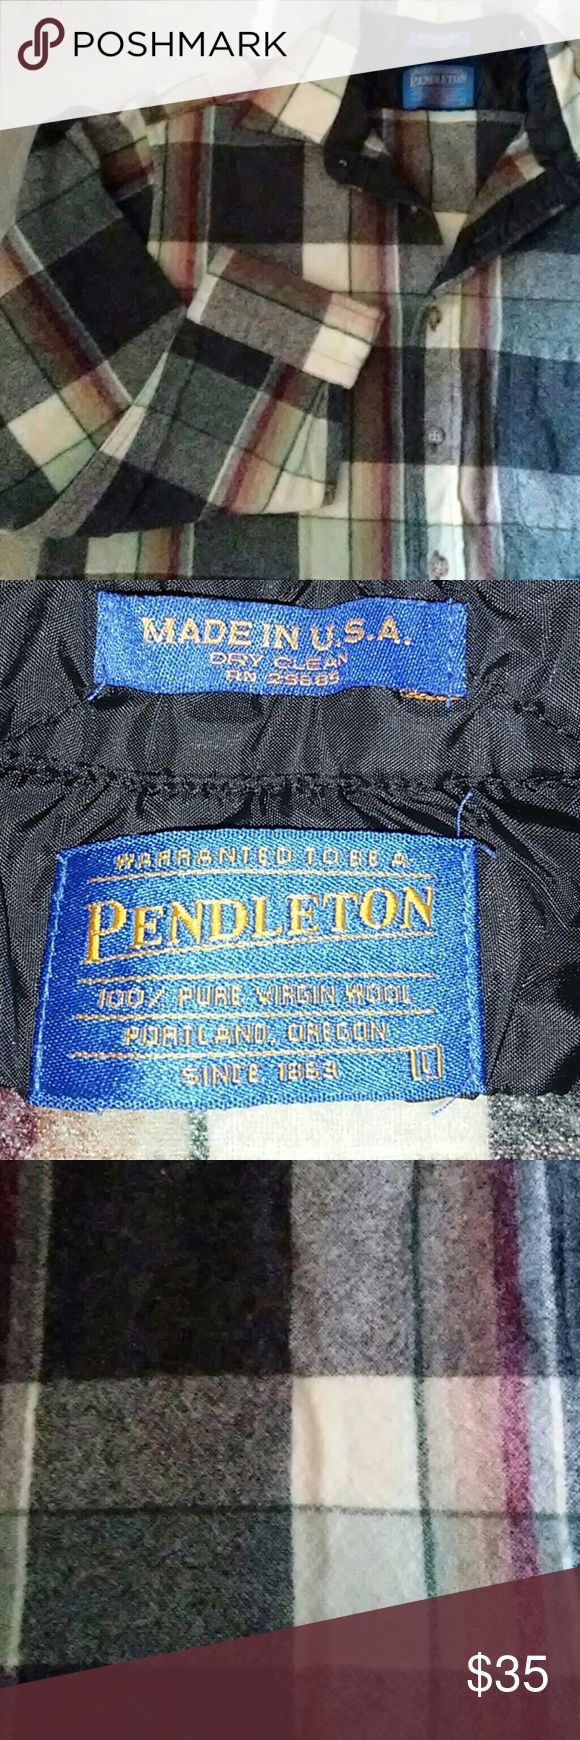 Pendleton wool shirt Fabulous 100% virgin wool long sleeve Pendleton shirt. In perfect condition no rips stains or tears . measurements are 26 and a half inches from collar seam to hem and 40 inches around waste. Pendleton Shirts